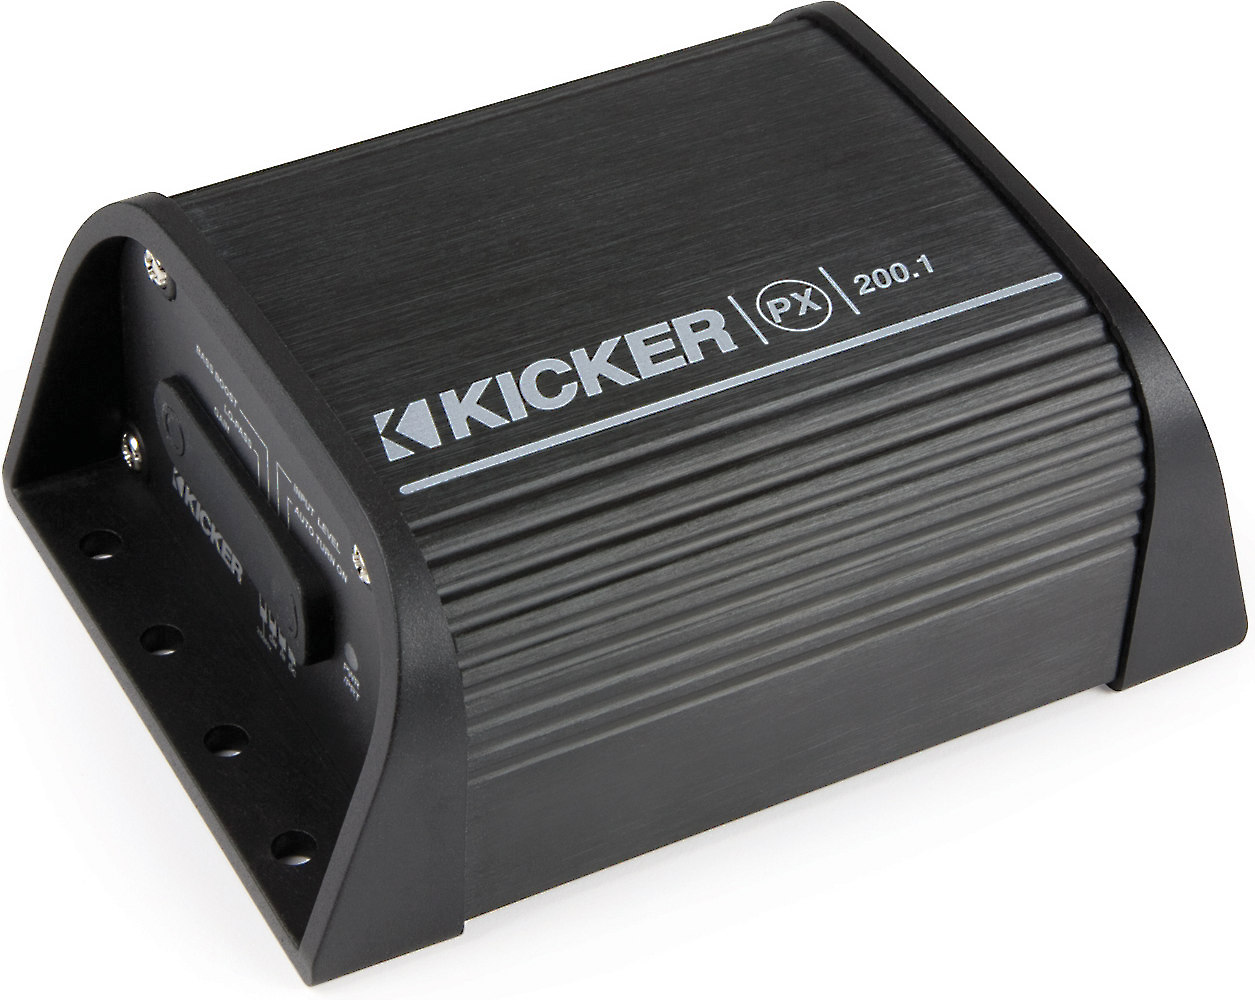 7baeae57 Kicker 12PX200.1 Compact mono subwoofer amplifier — 200 watts RMS x 1 at  1/2 ohm at Crutchfield.com